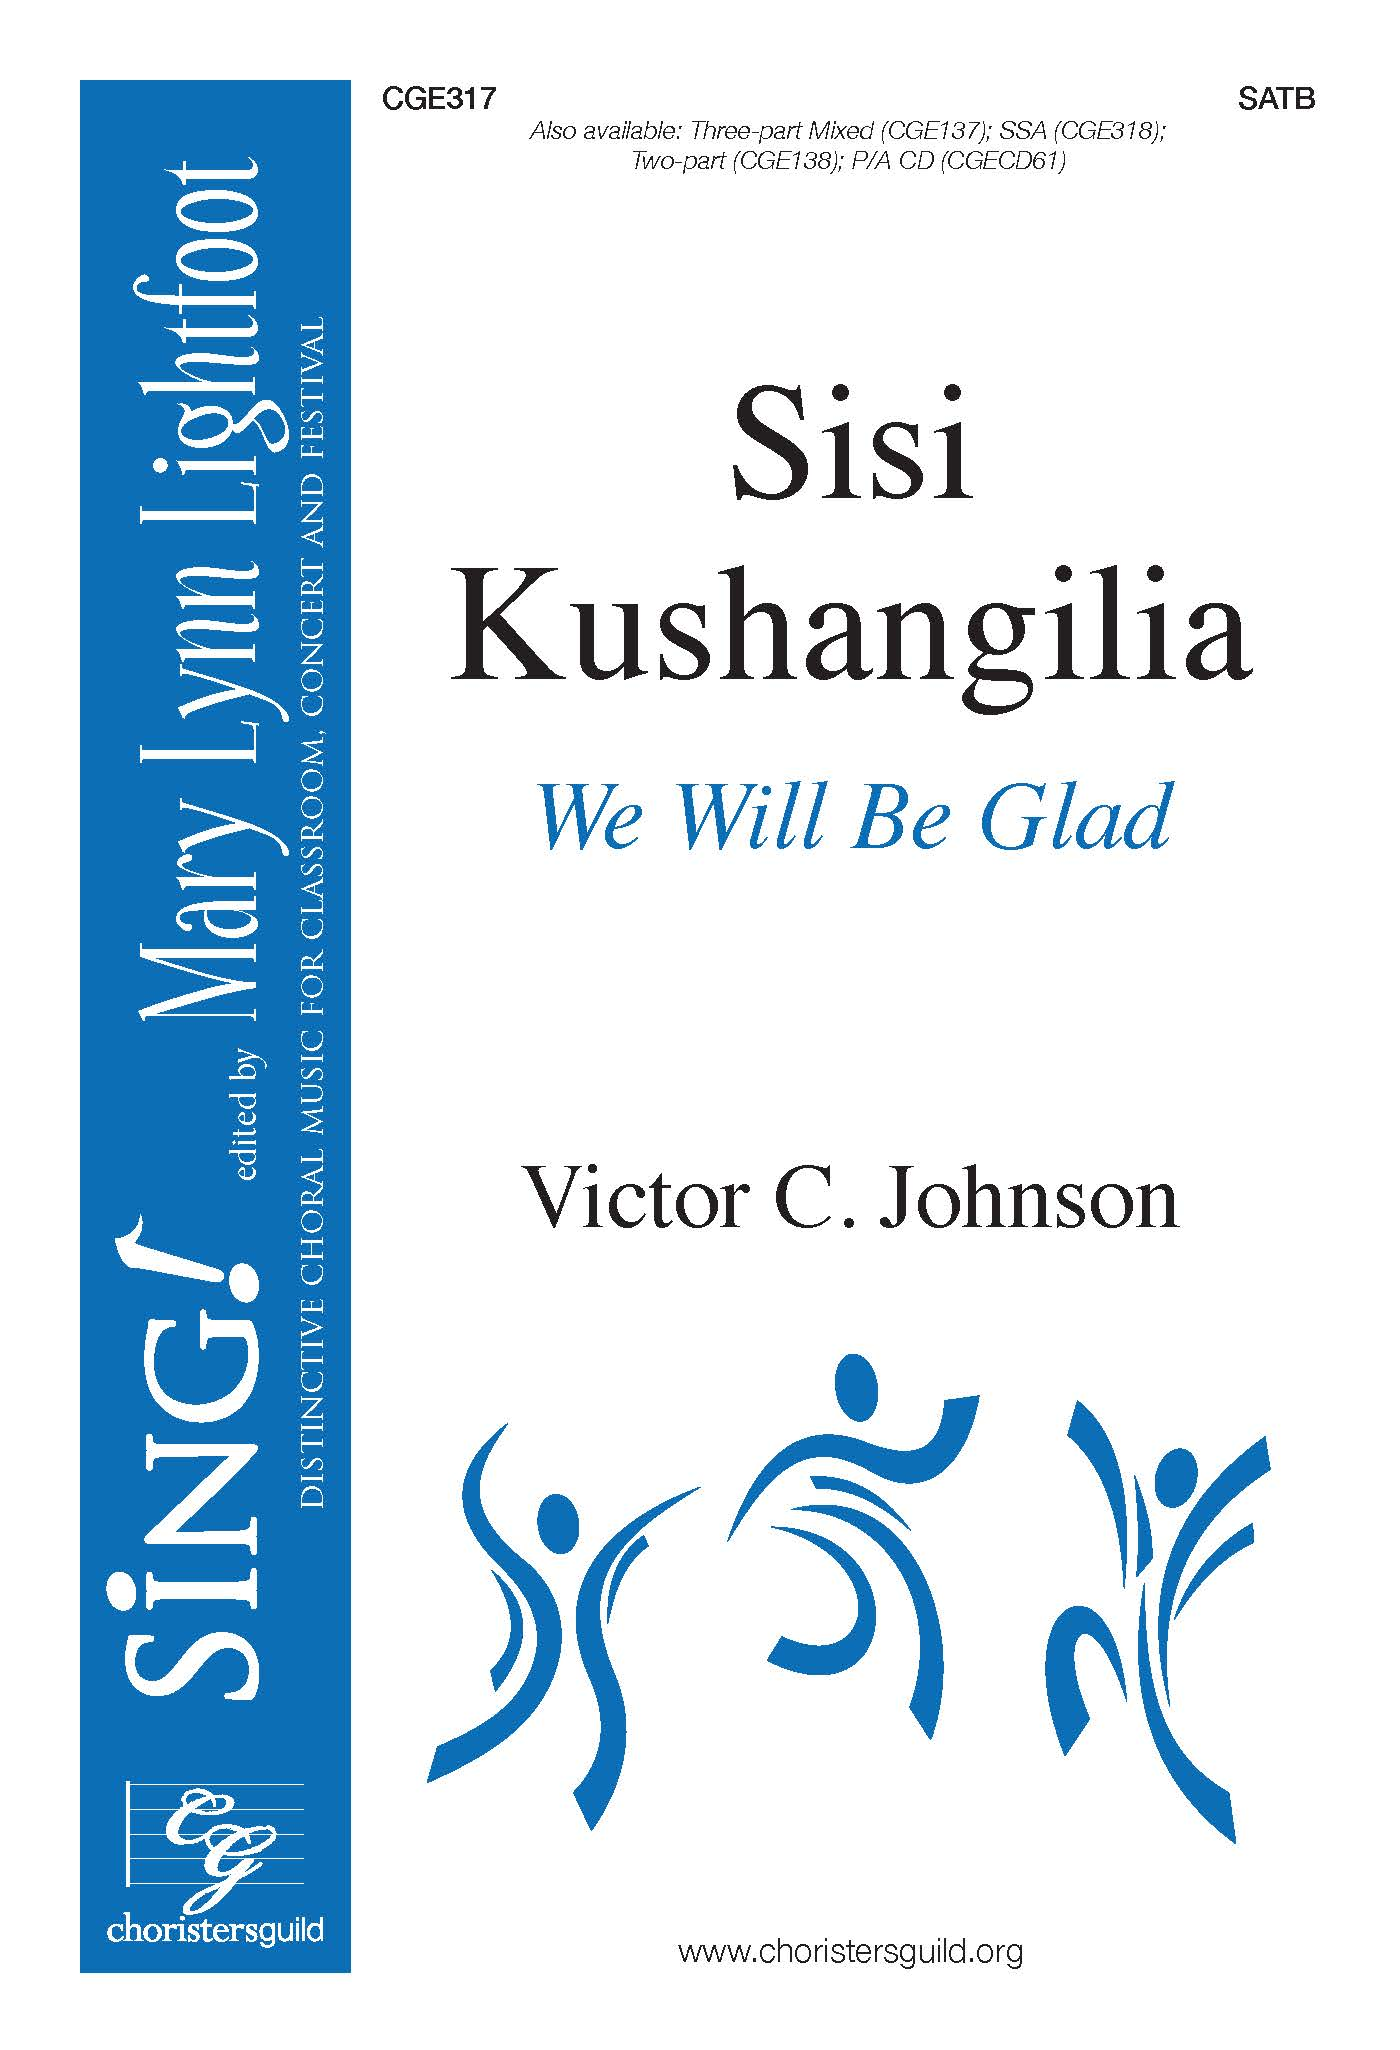 Sisi Kushangilia (We Will Be Glad) - SATB